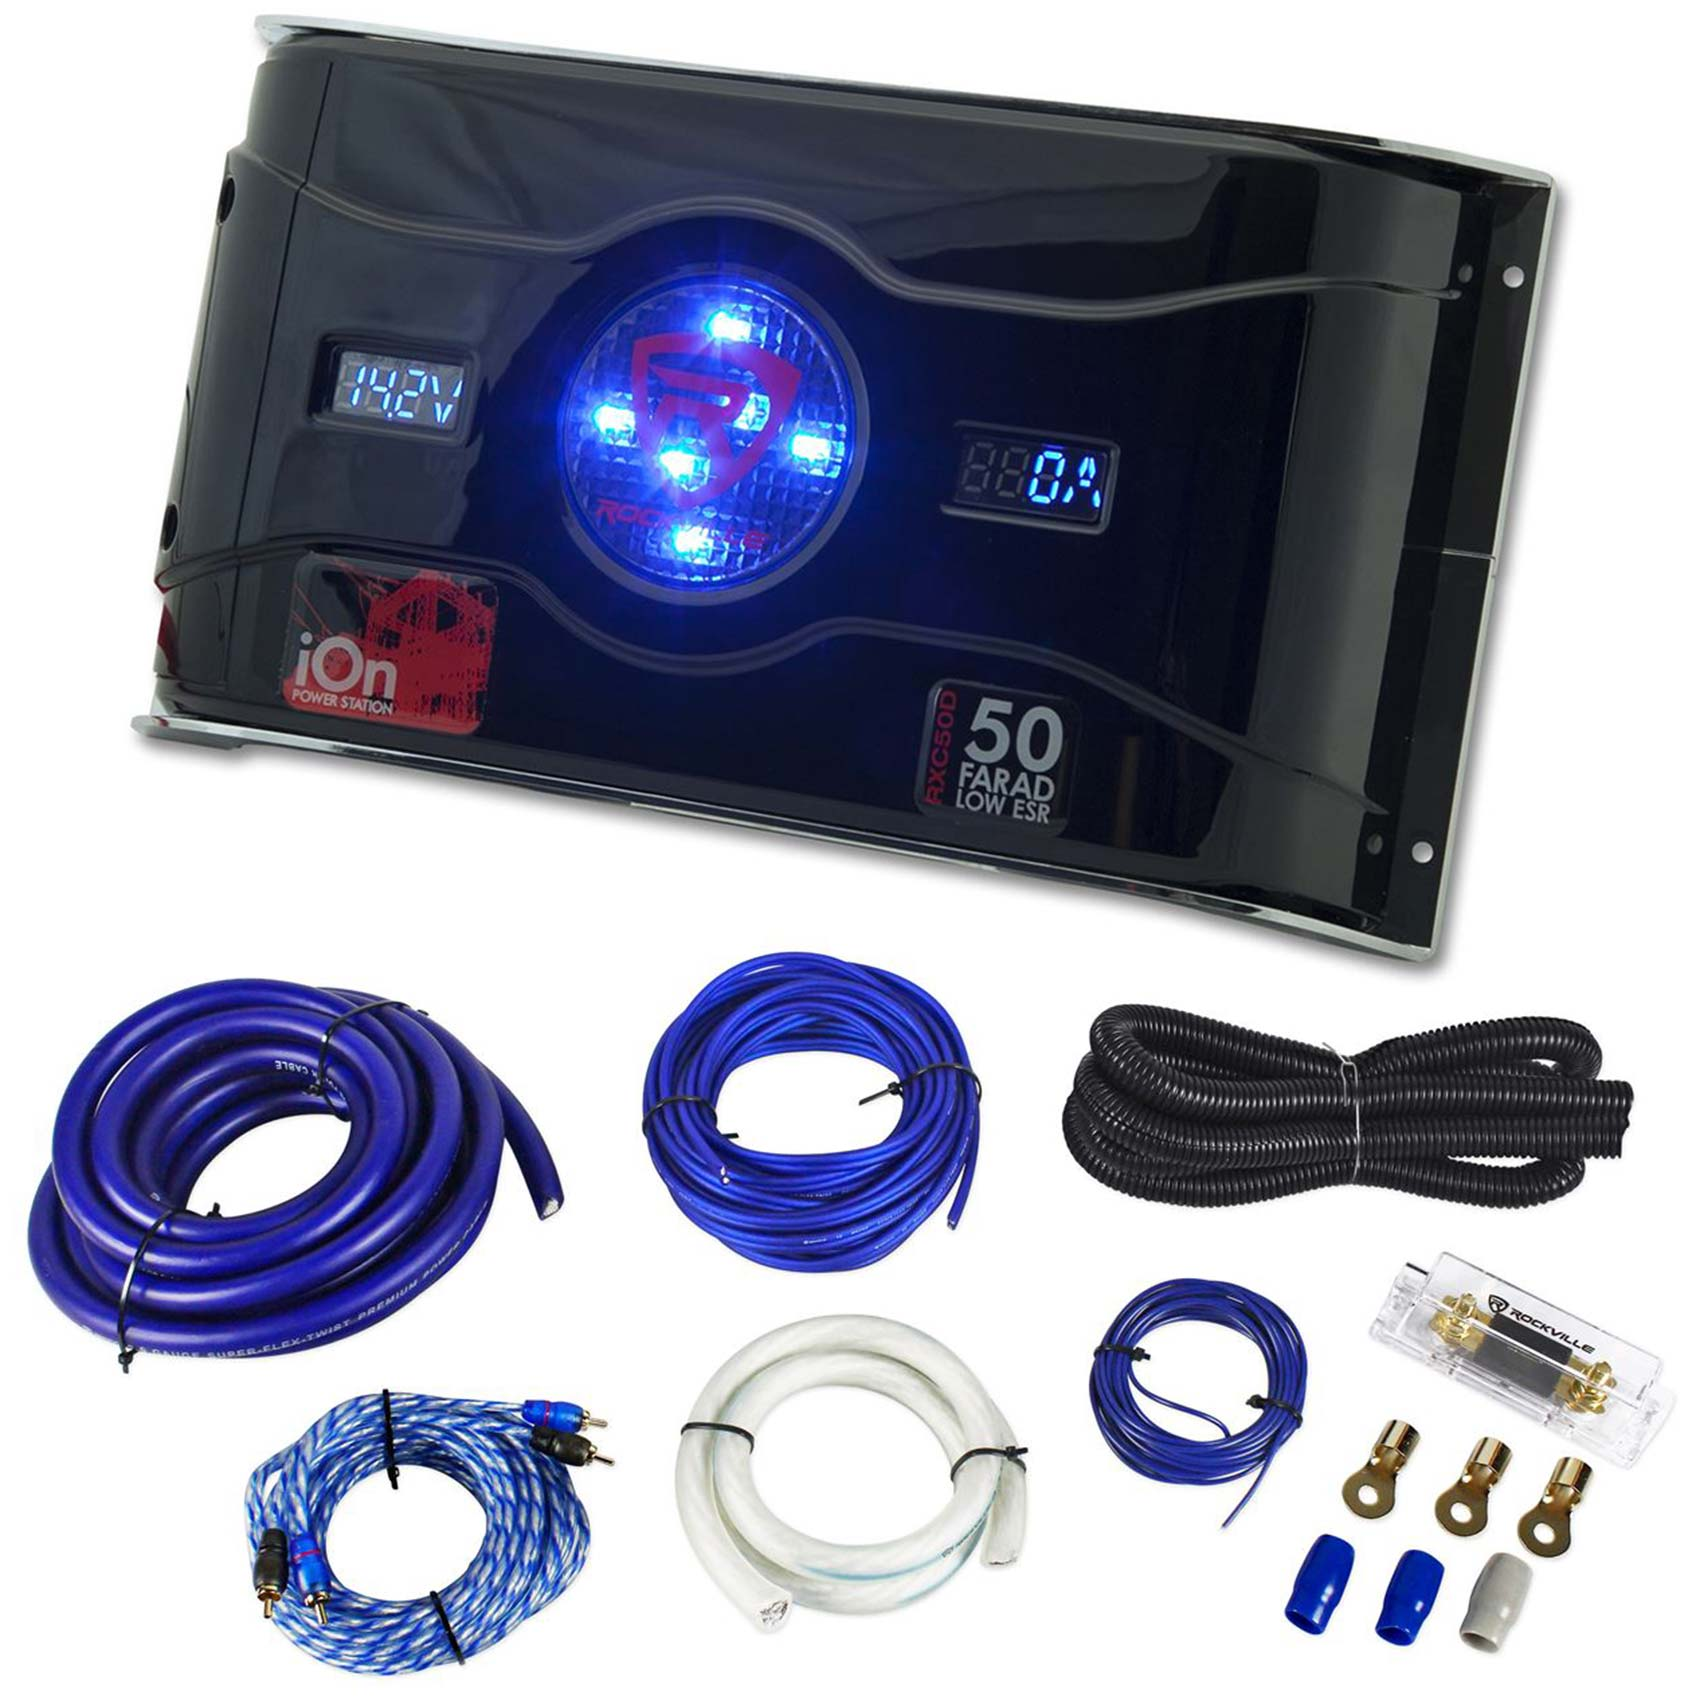 small resolution of rockville 50 farad hybrid led car capacitor w dual meters 0 gauge amp wire kit car amp wiring kit walmart